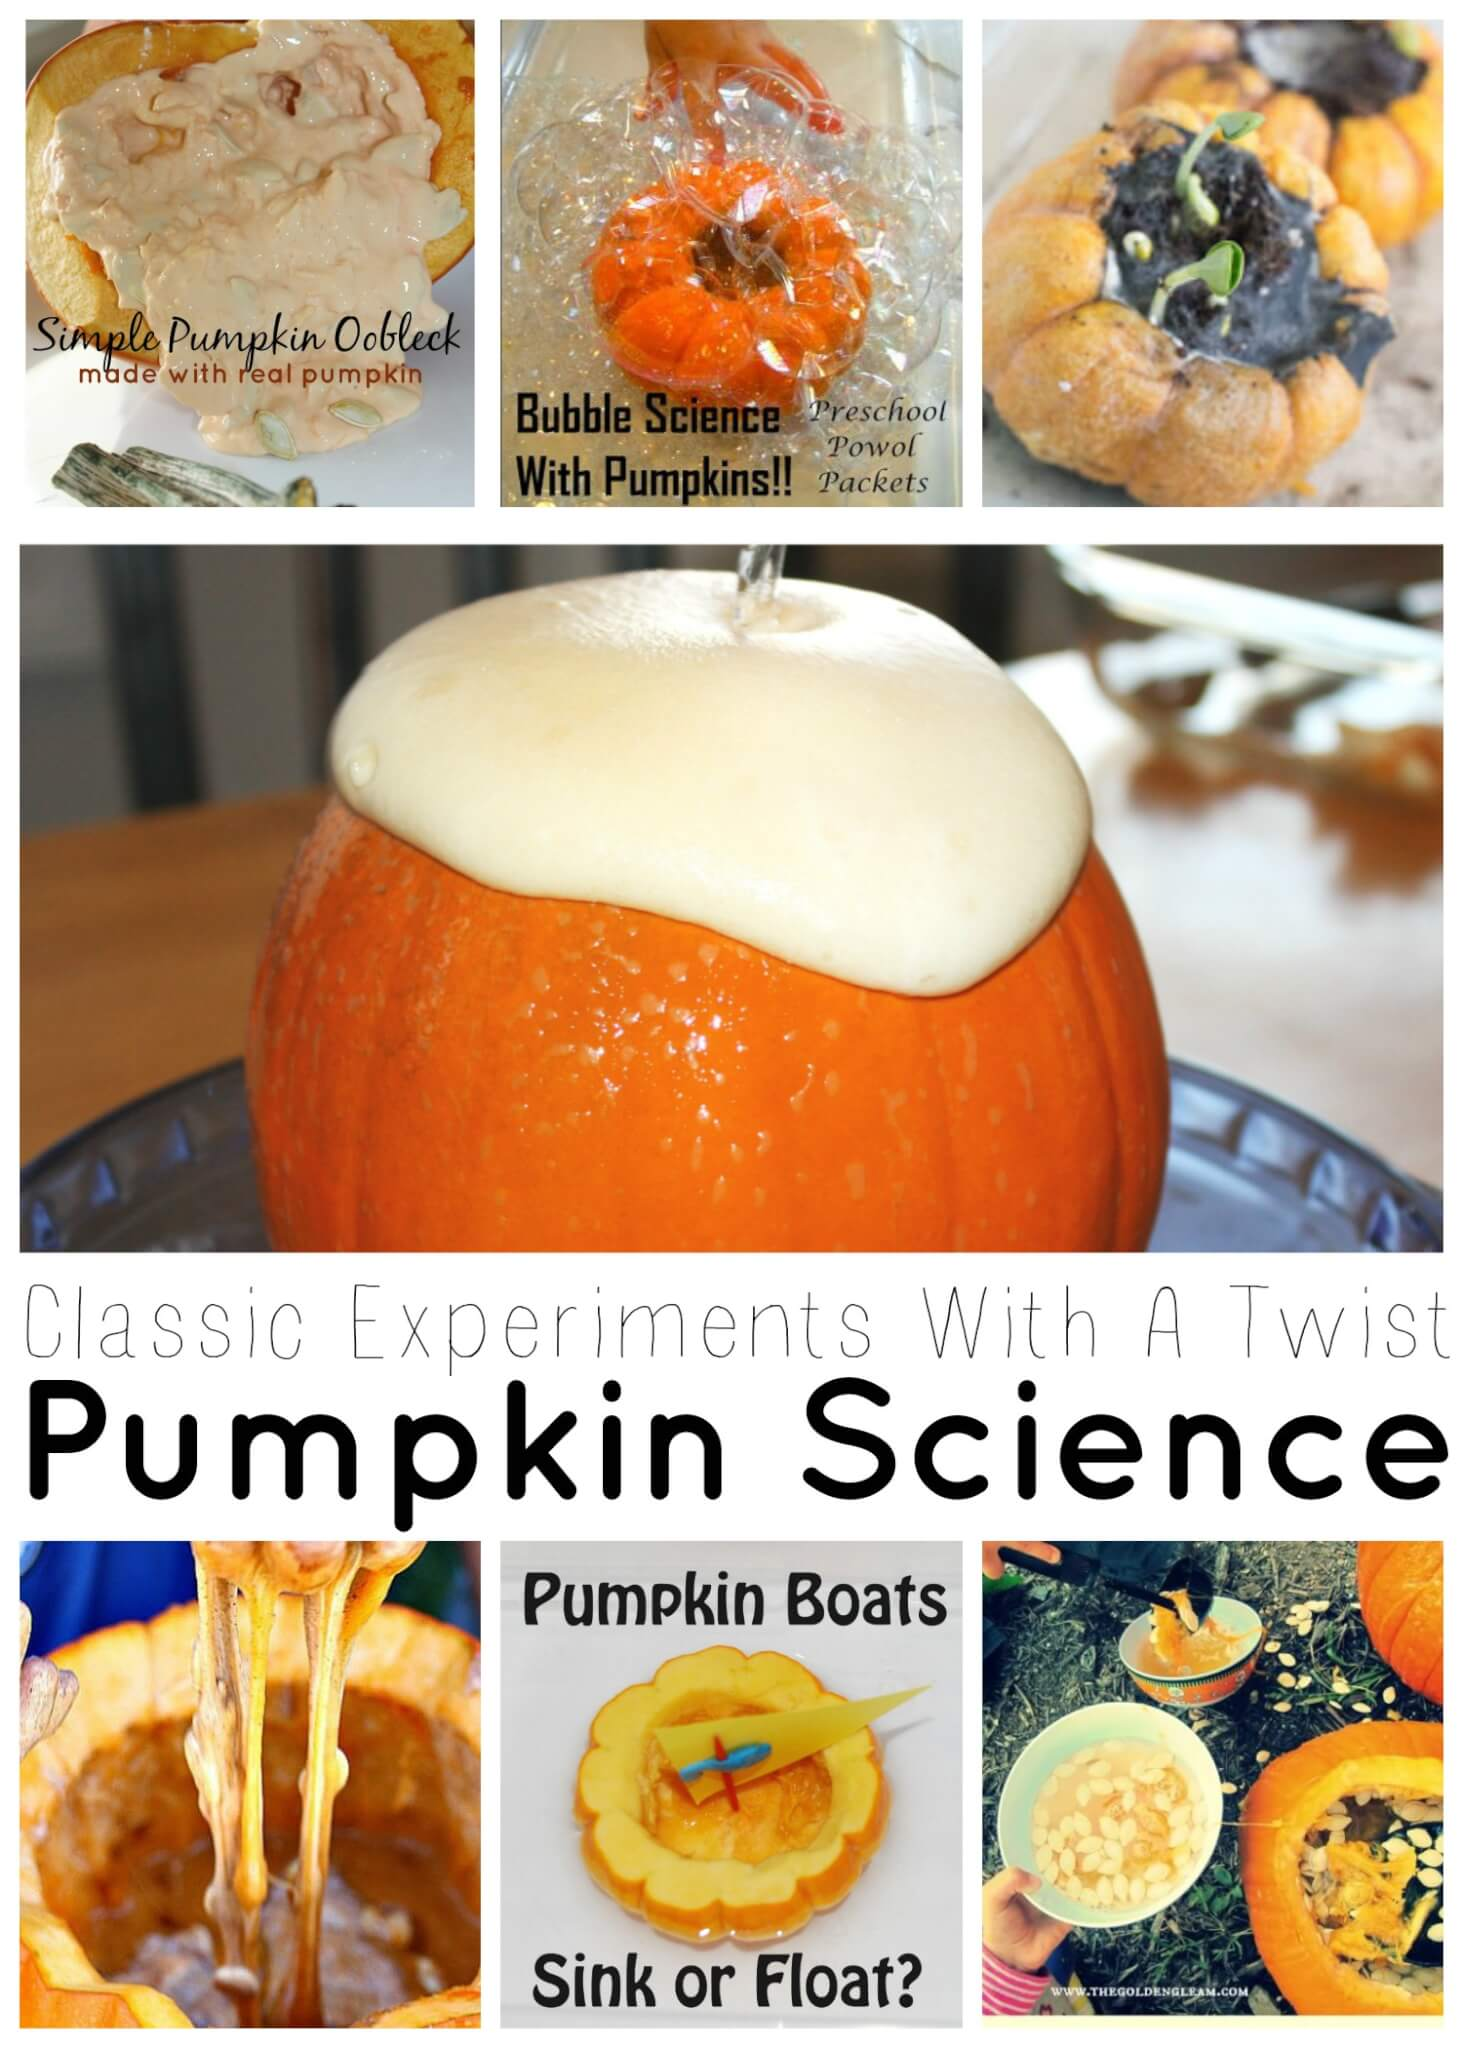 Pumpkin Science Experiments Classics With A Twist Little Bins For Little Hands